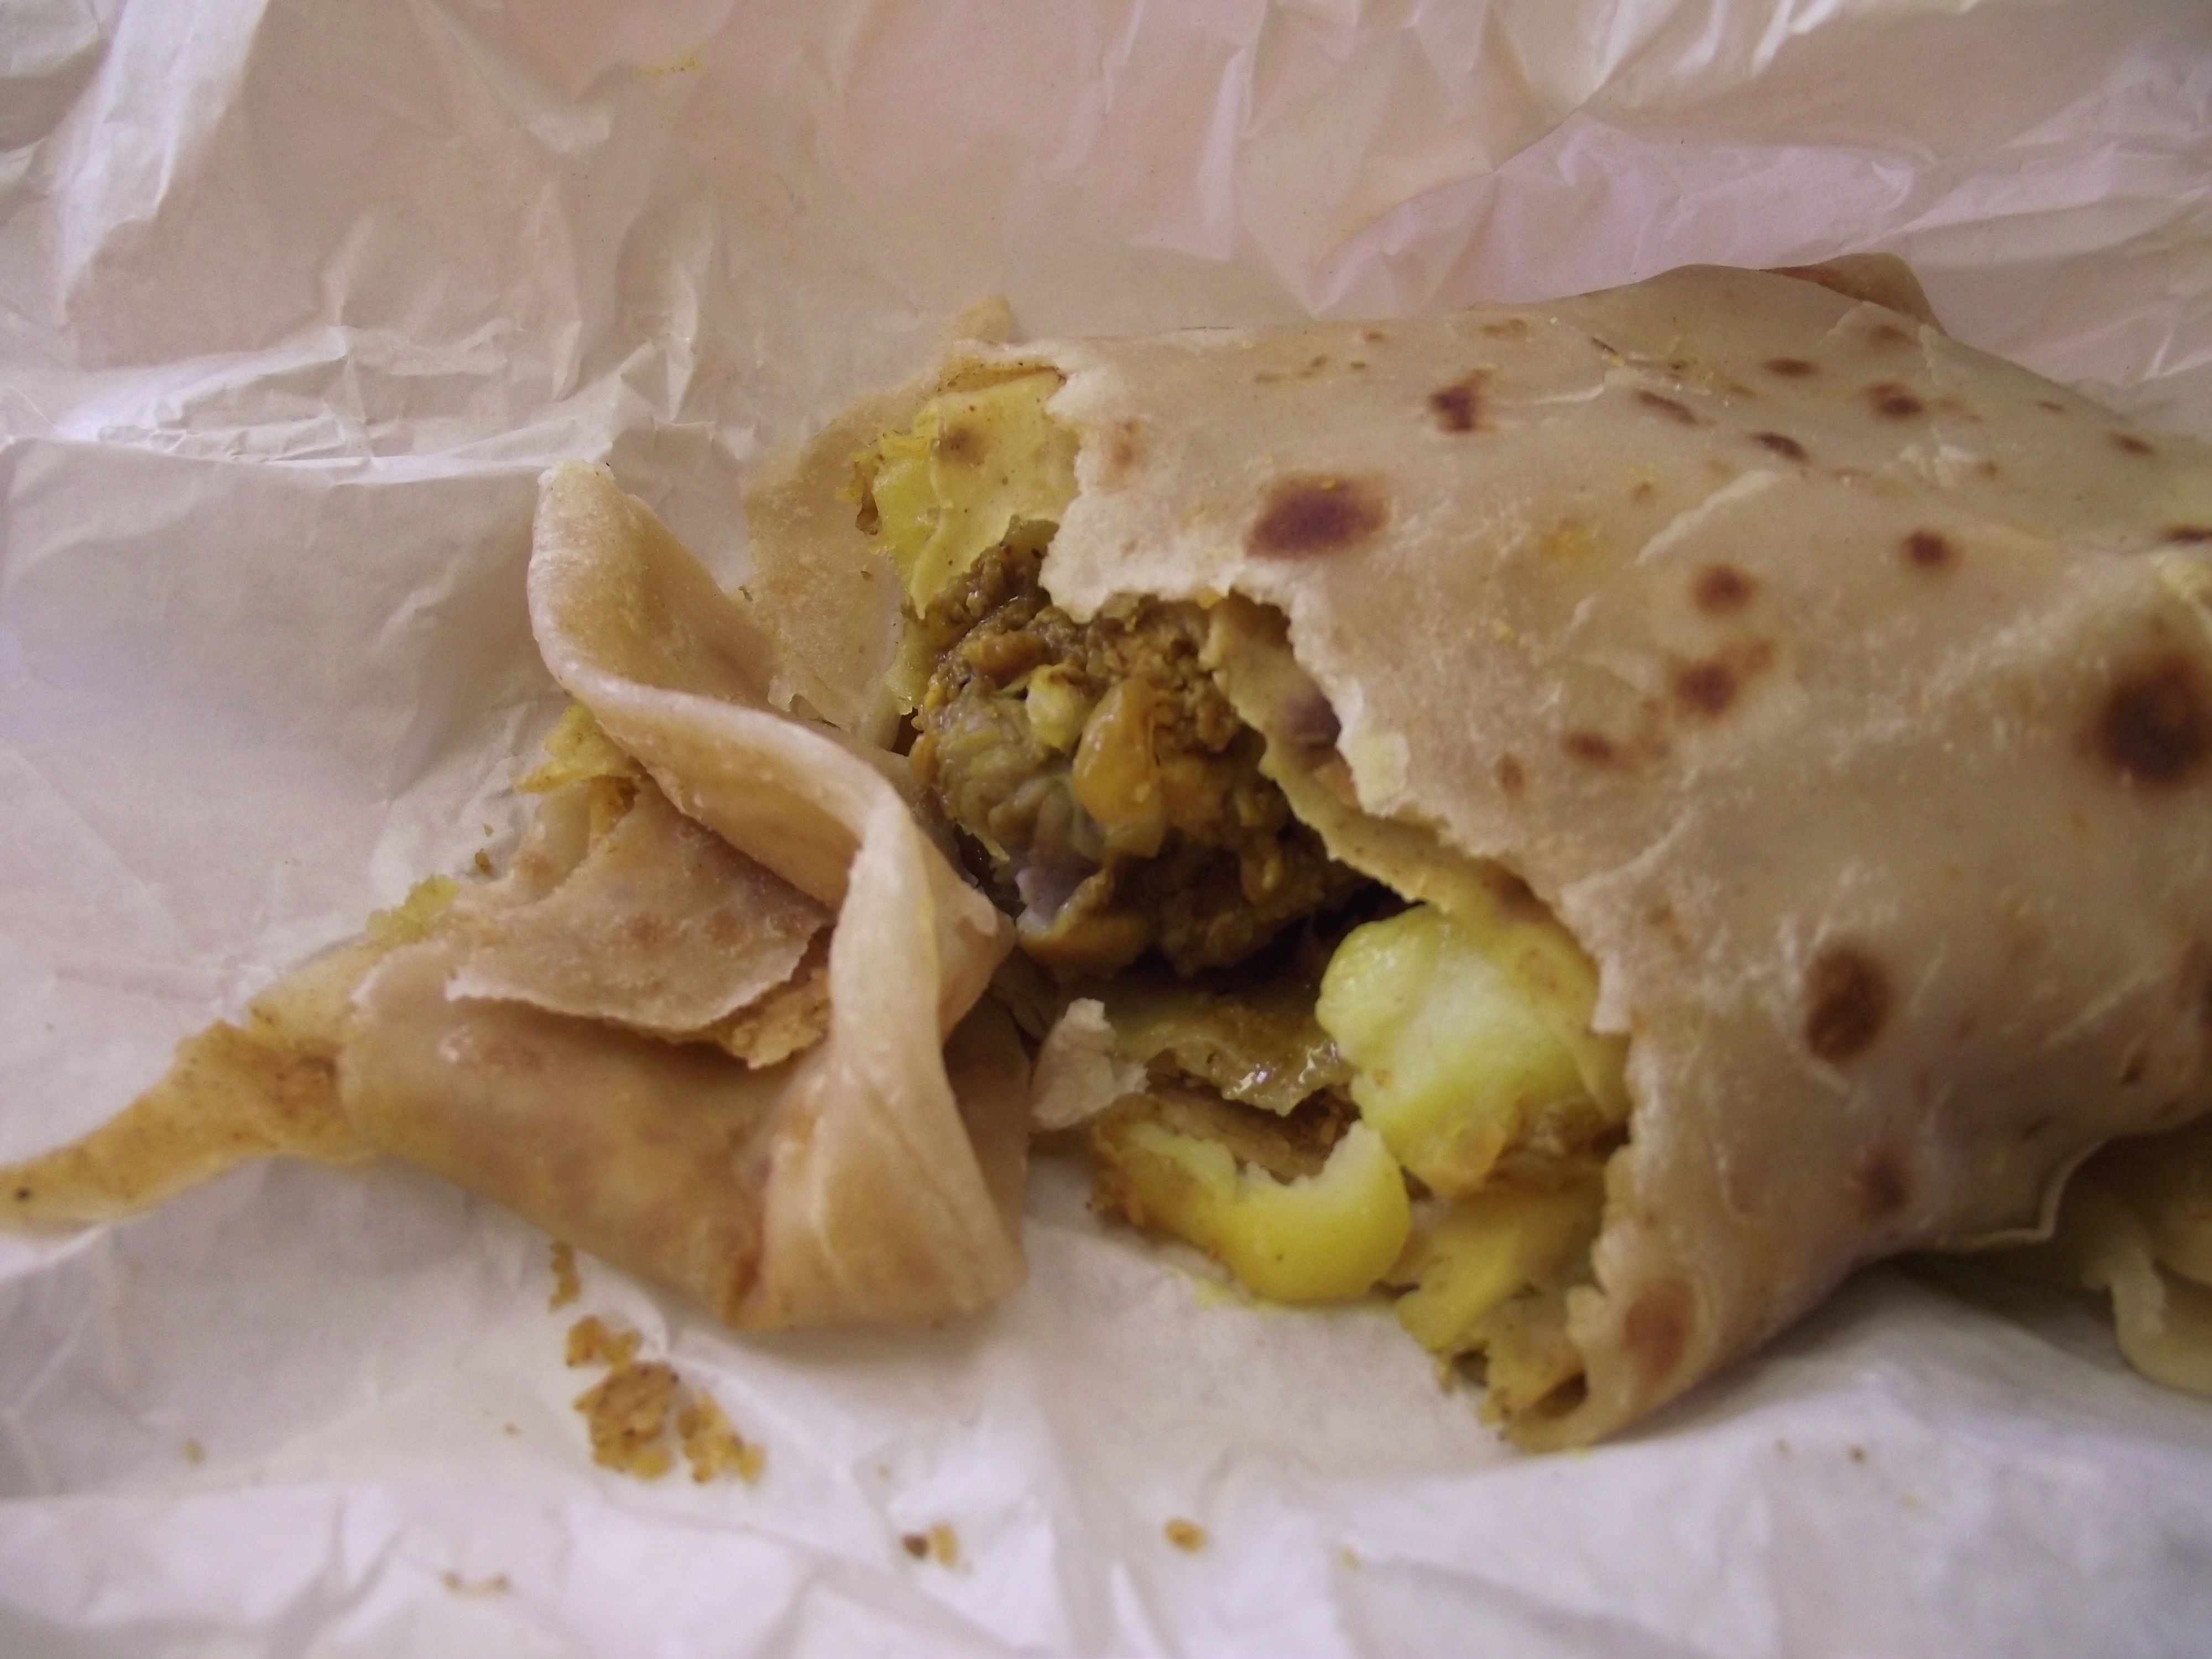 Chicken roti in Grenada, West Indies. Roti is a chickpea